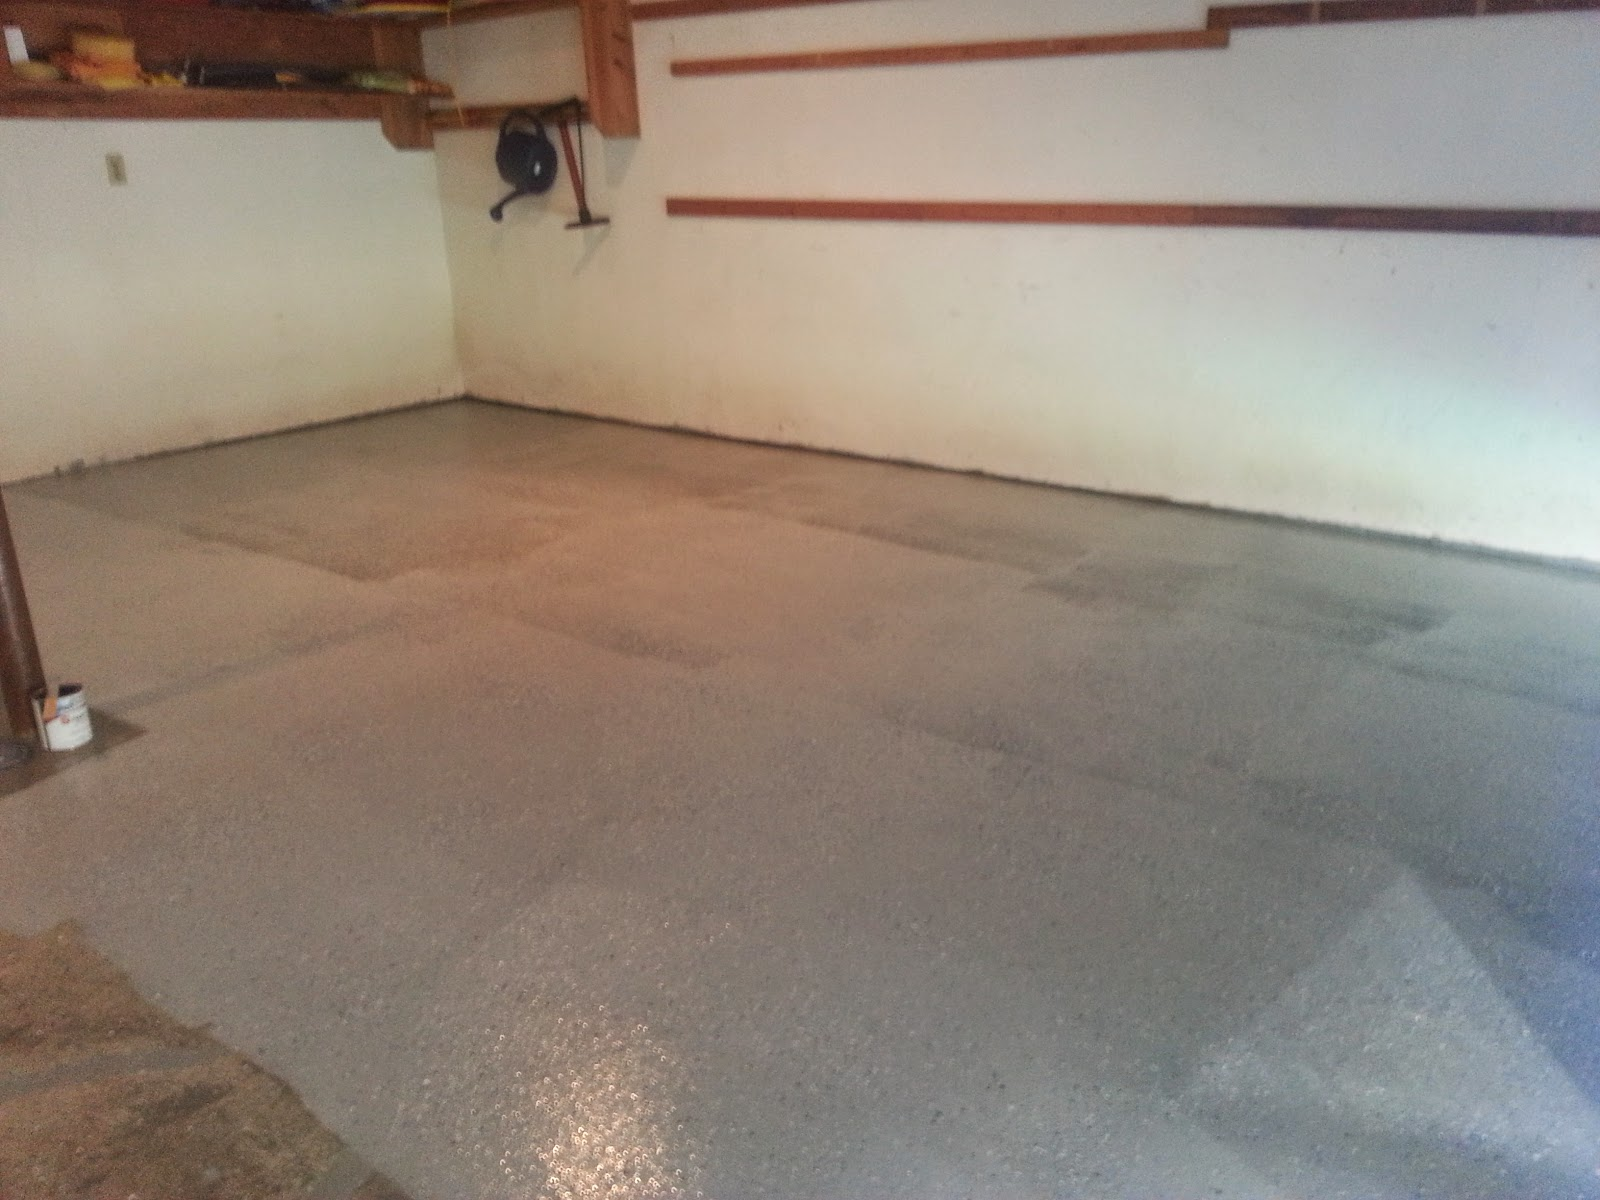 EpoxyShield Garage Floor Project, Part 5